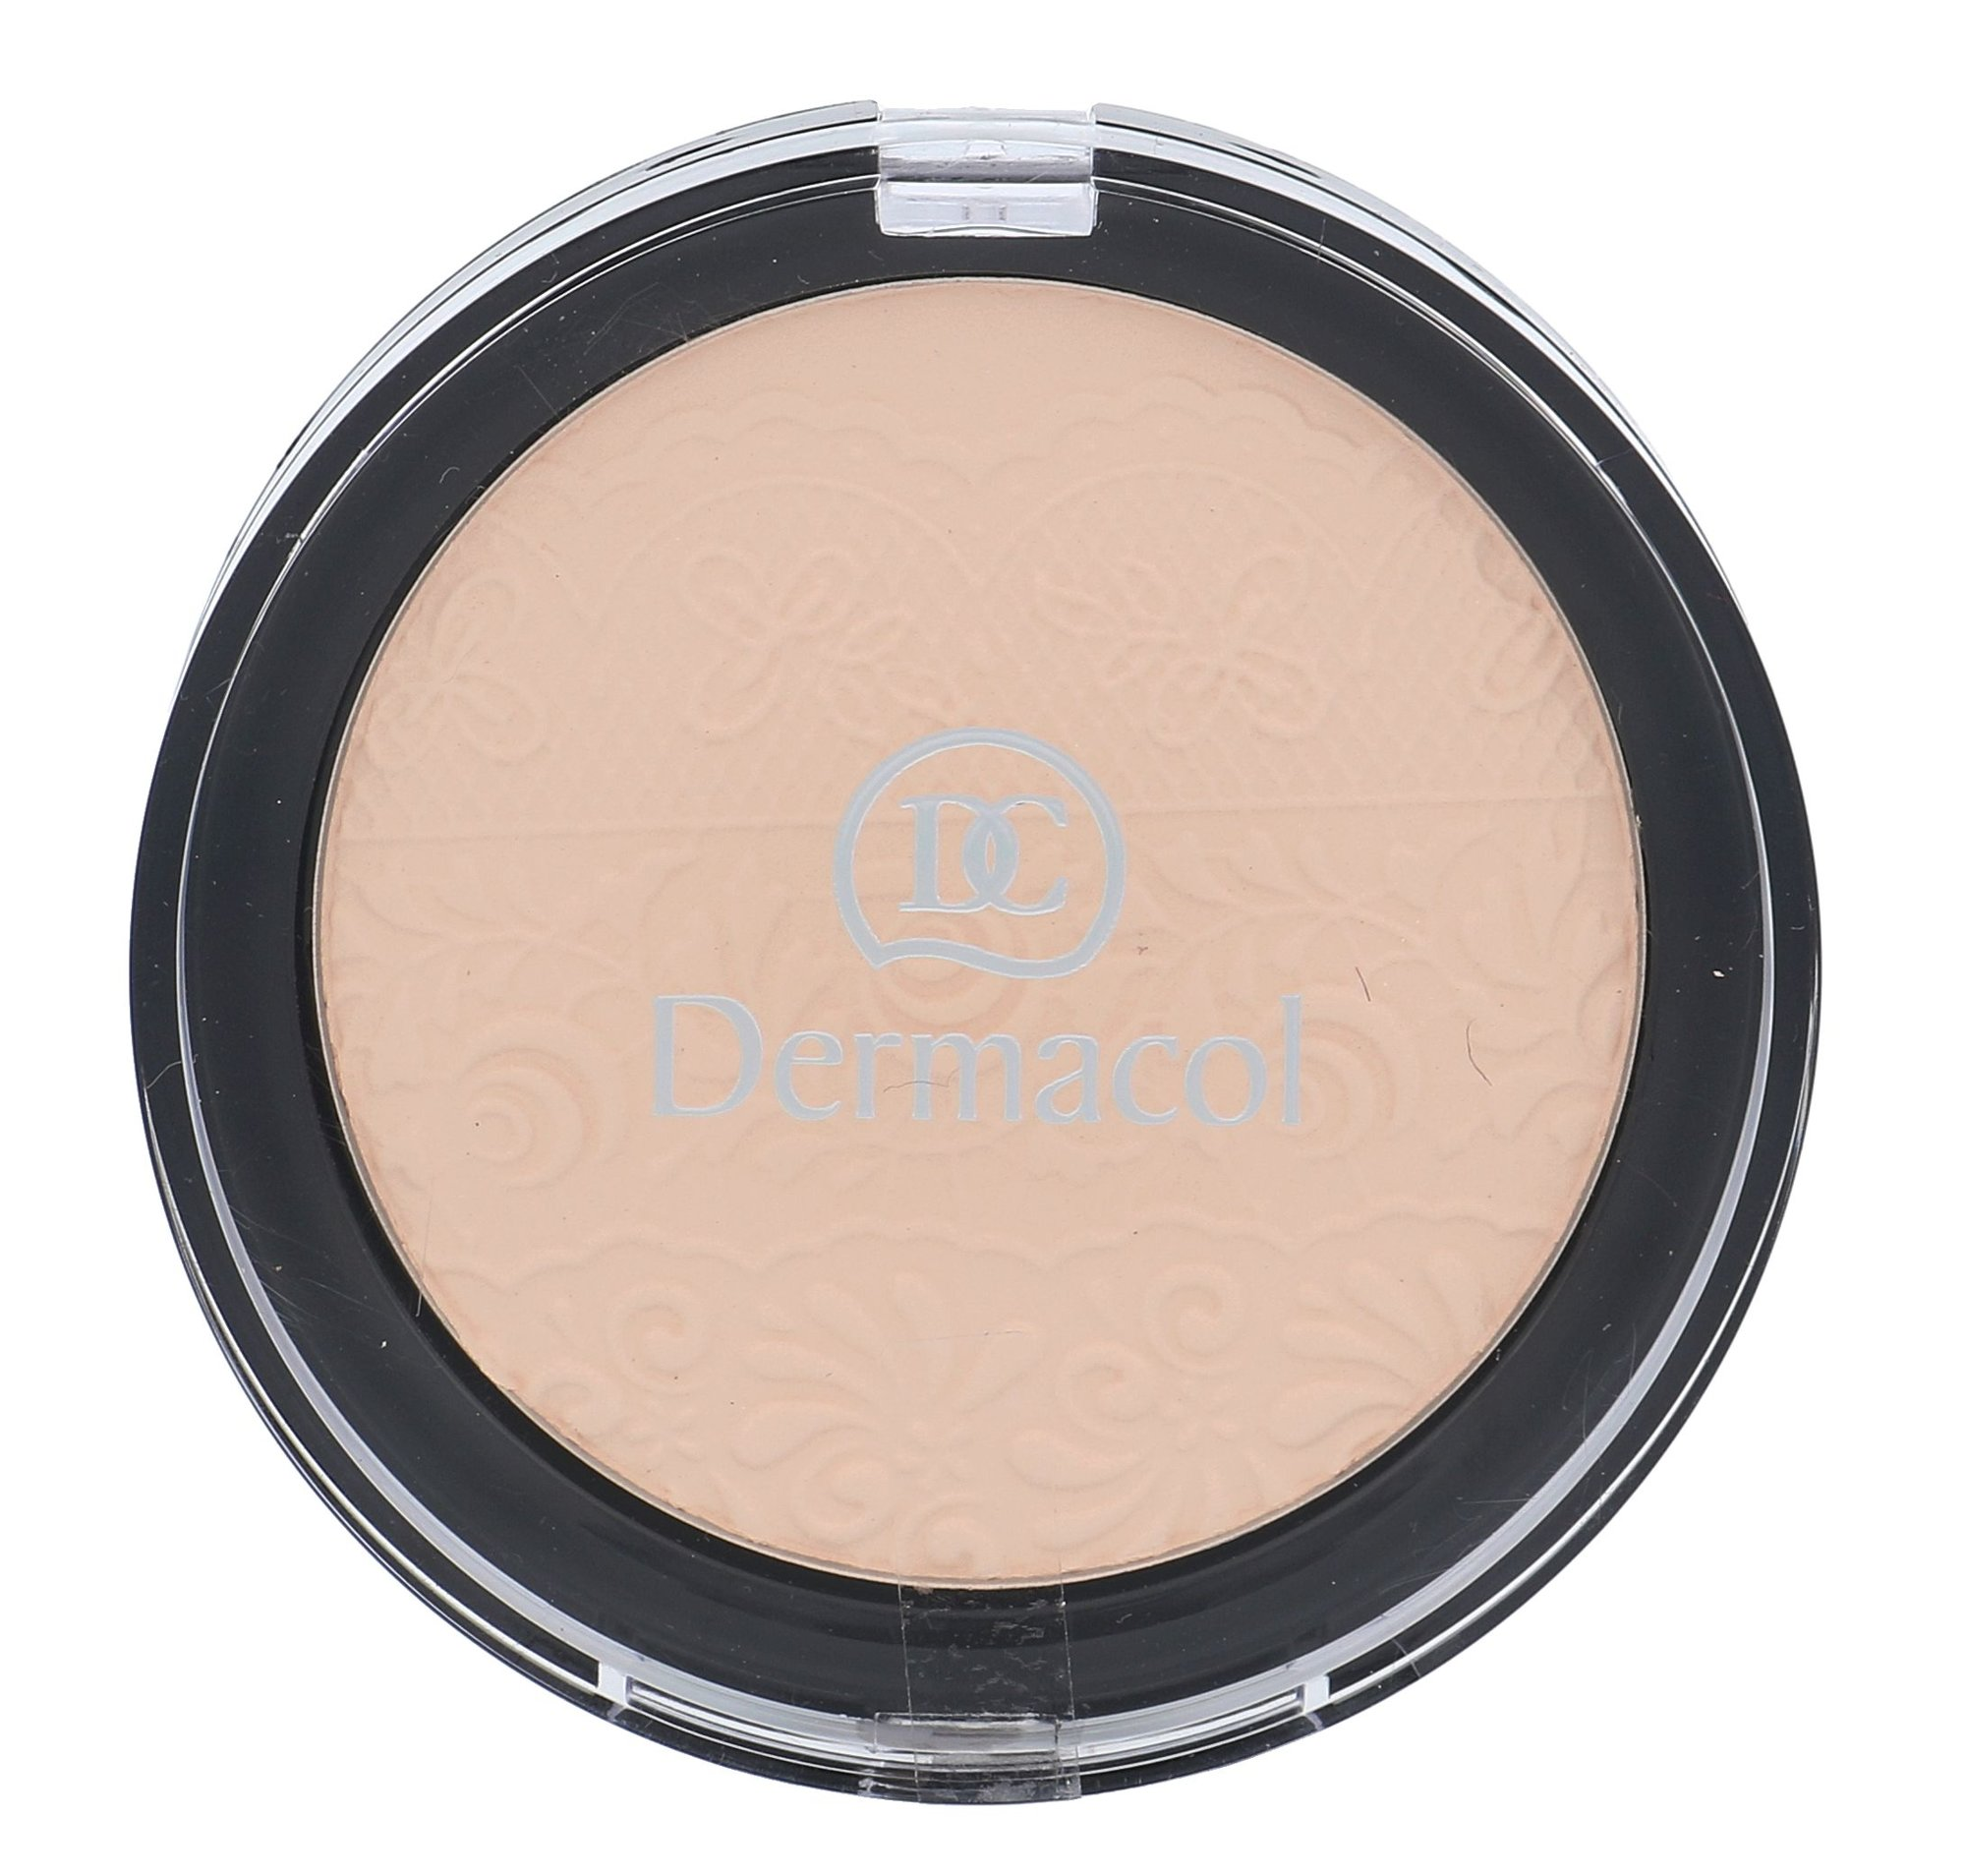 Dermacol Compact Powder Cosmetic 8ml 04